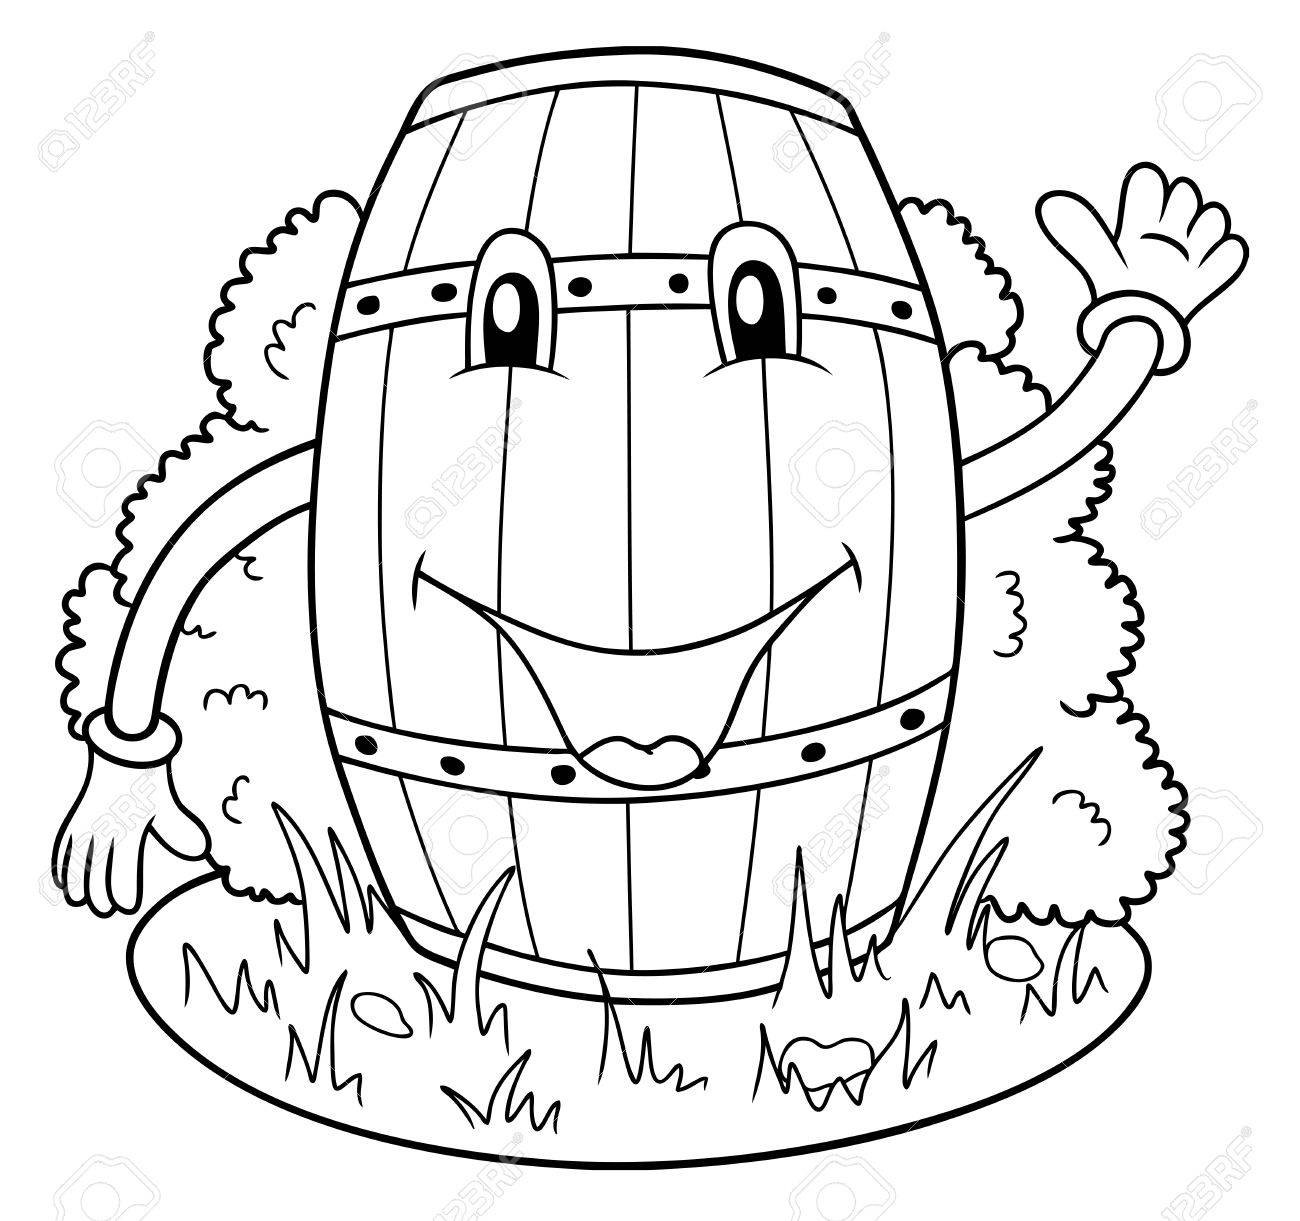 1300x1221 Funny Keg, Coloring Page Illustration Royalty Free Cliparts